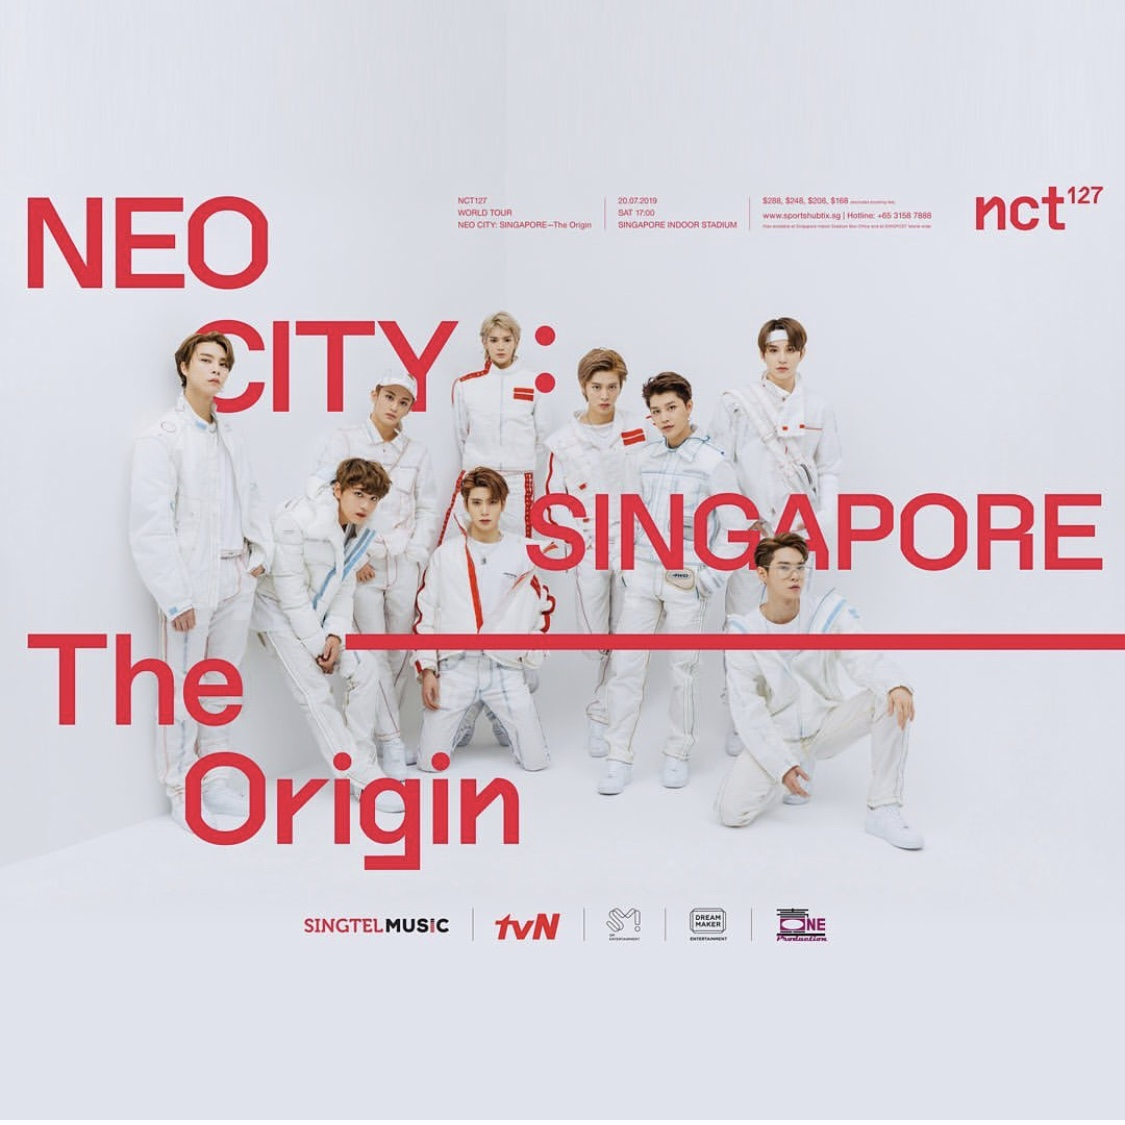 NCT 127 NEO CITY in Singapore